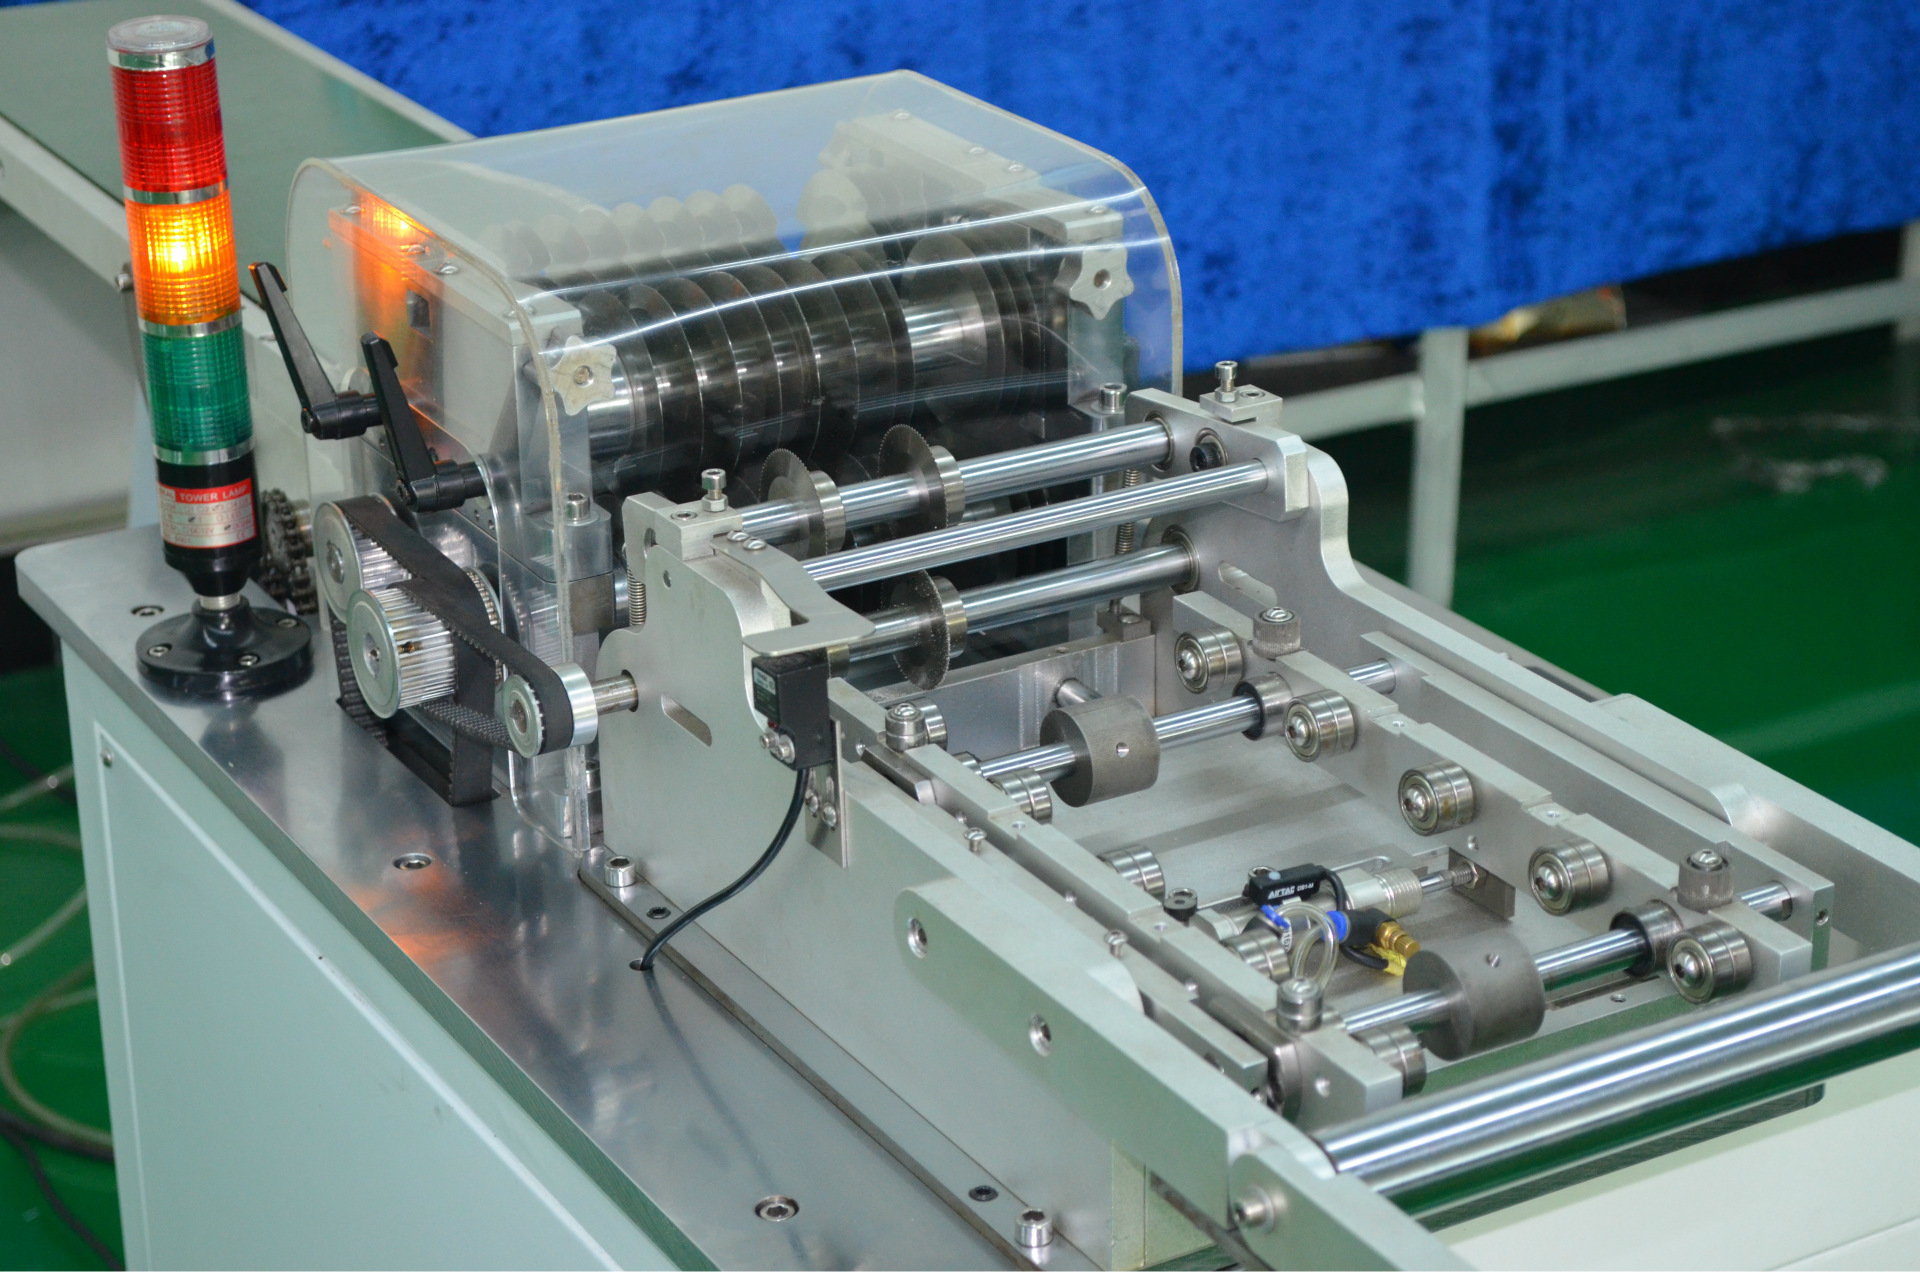 High Efficiency Multi Blades Pcb Depaneling Machine With Data Board Cutting Circuit Cutter Of Pcbdepanelingmachine Monitoring Systems For Sale Manufacturer From China 102926155